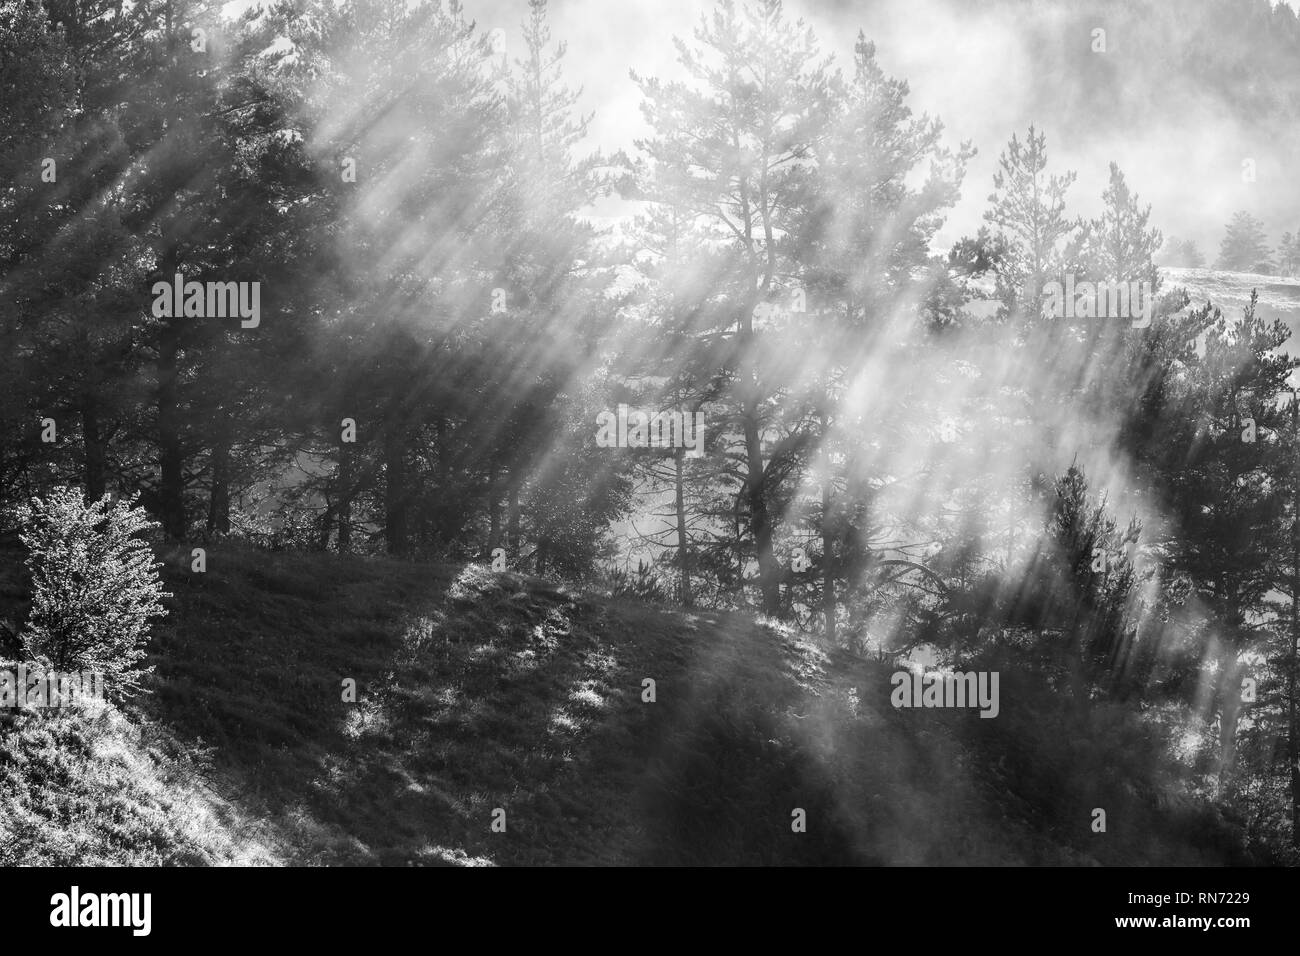 Sunbeams in the morning foggy forest. Rays breaking through the fog. - Stock Image